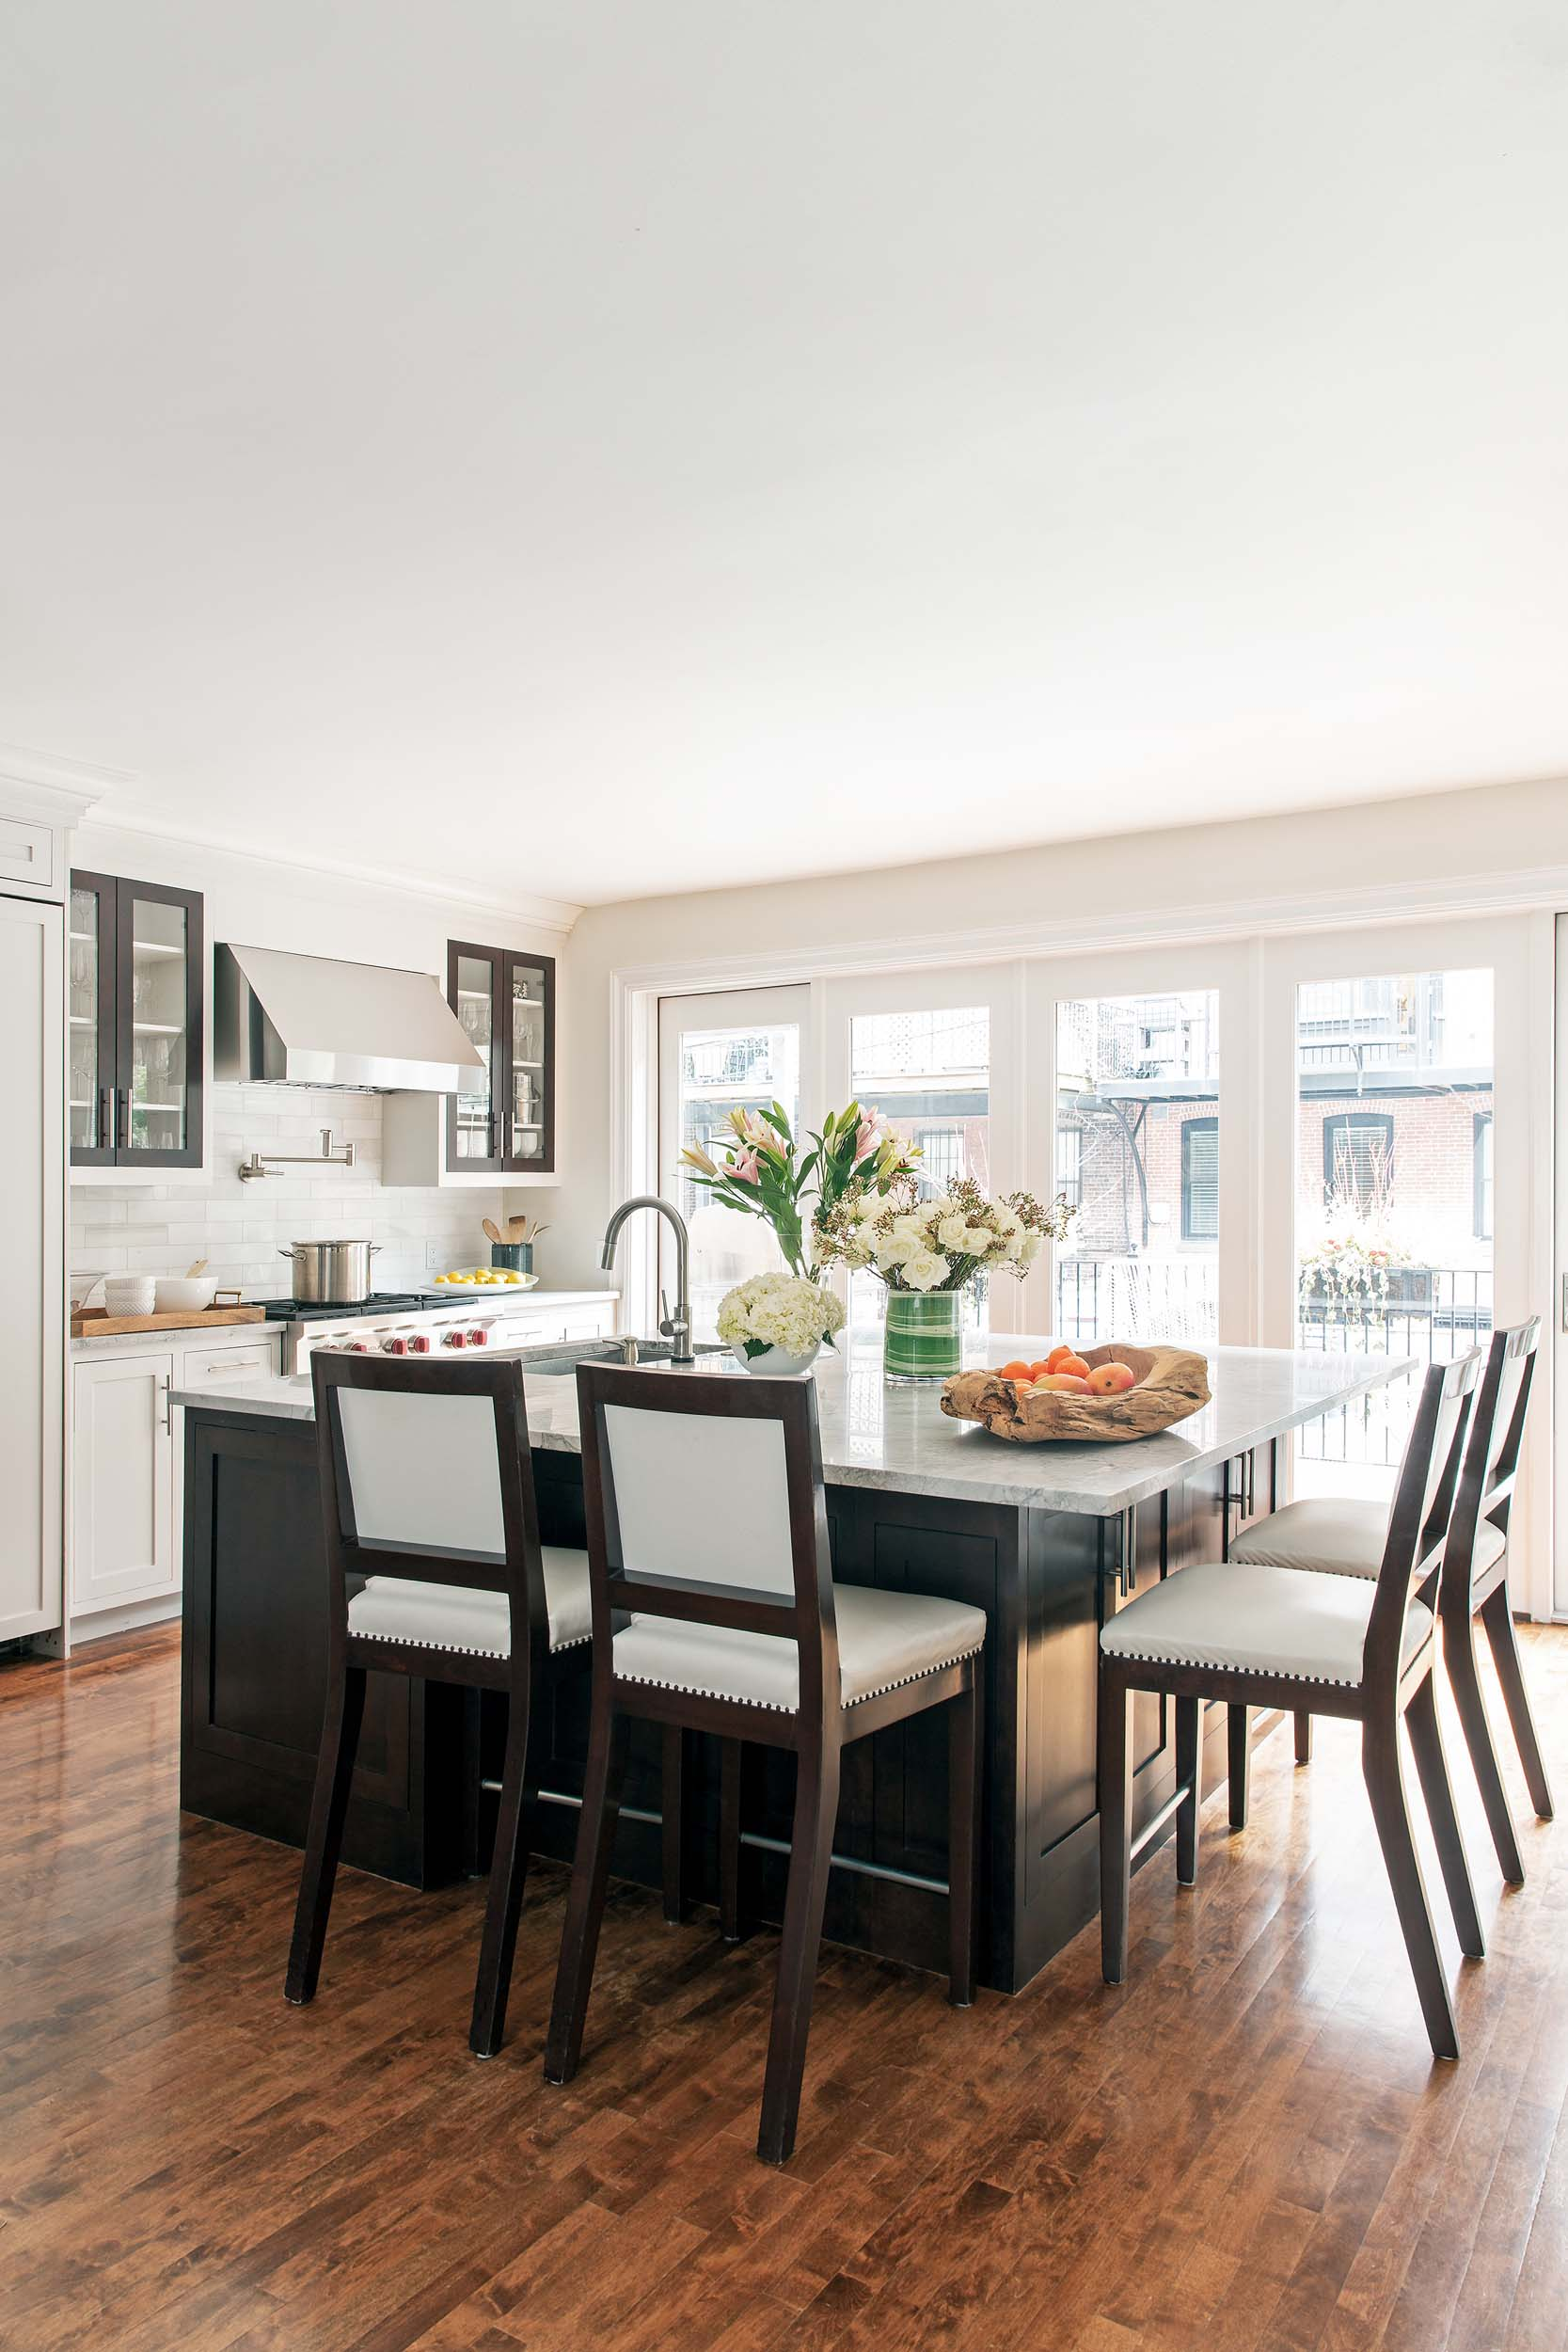 Boston kitchen interior design by Dane Austin Design